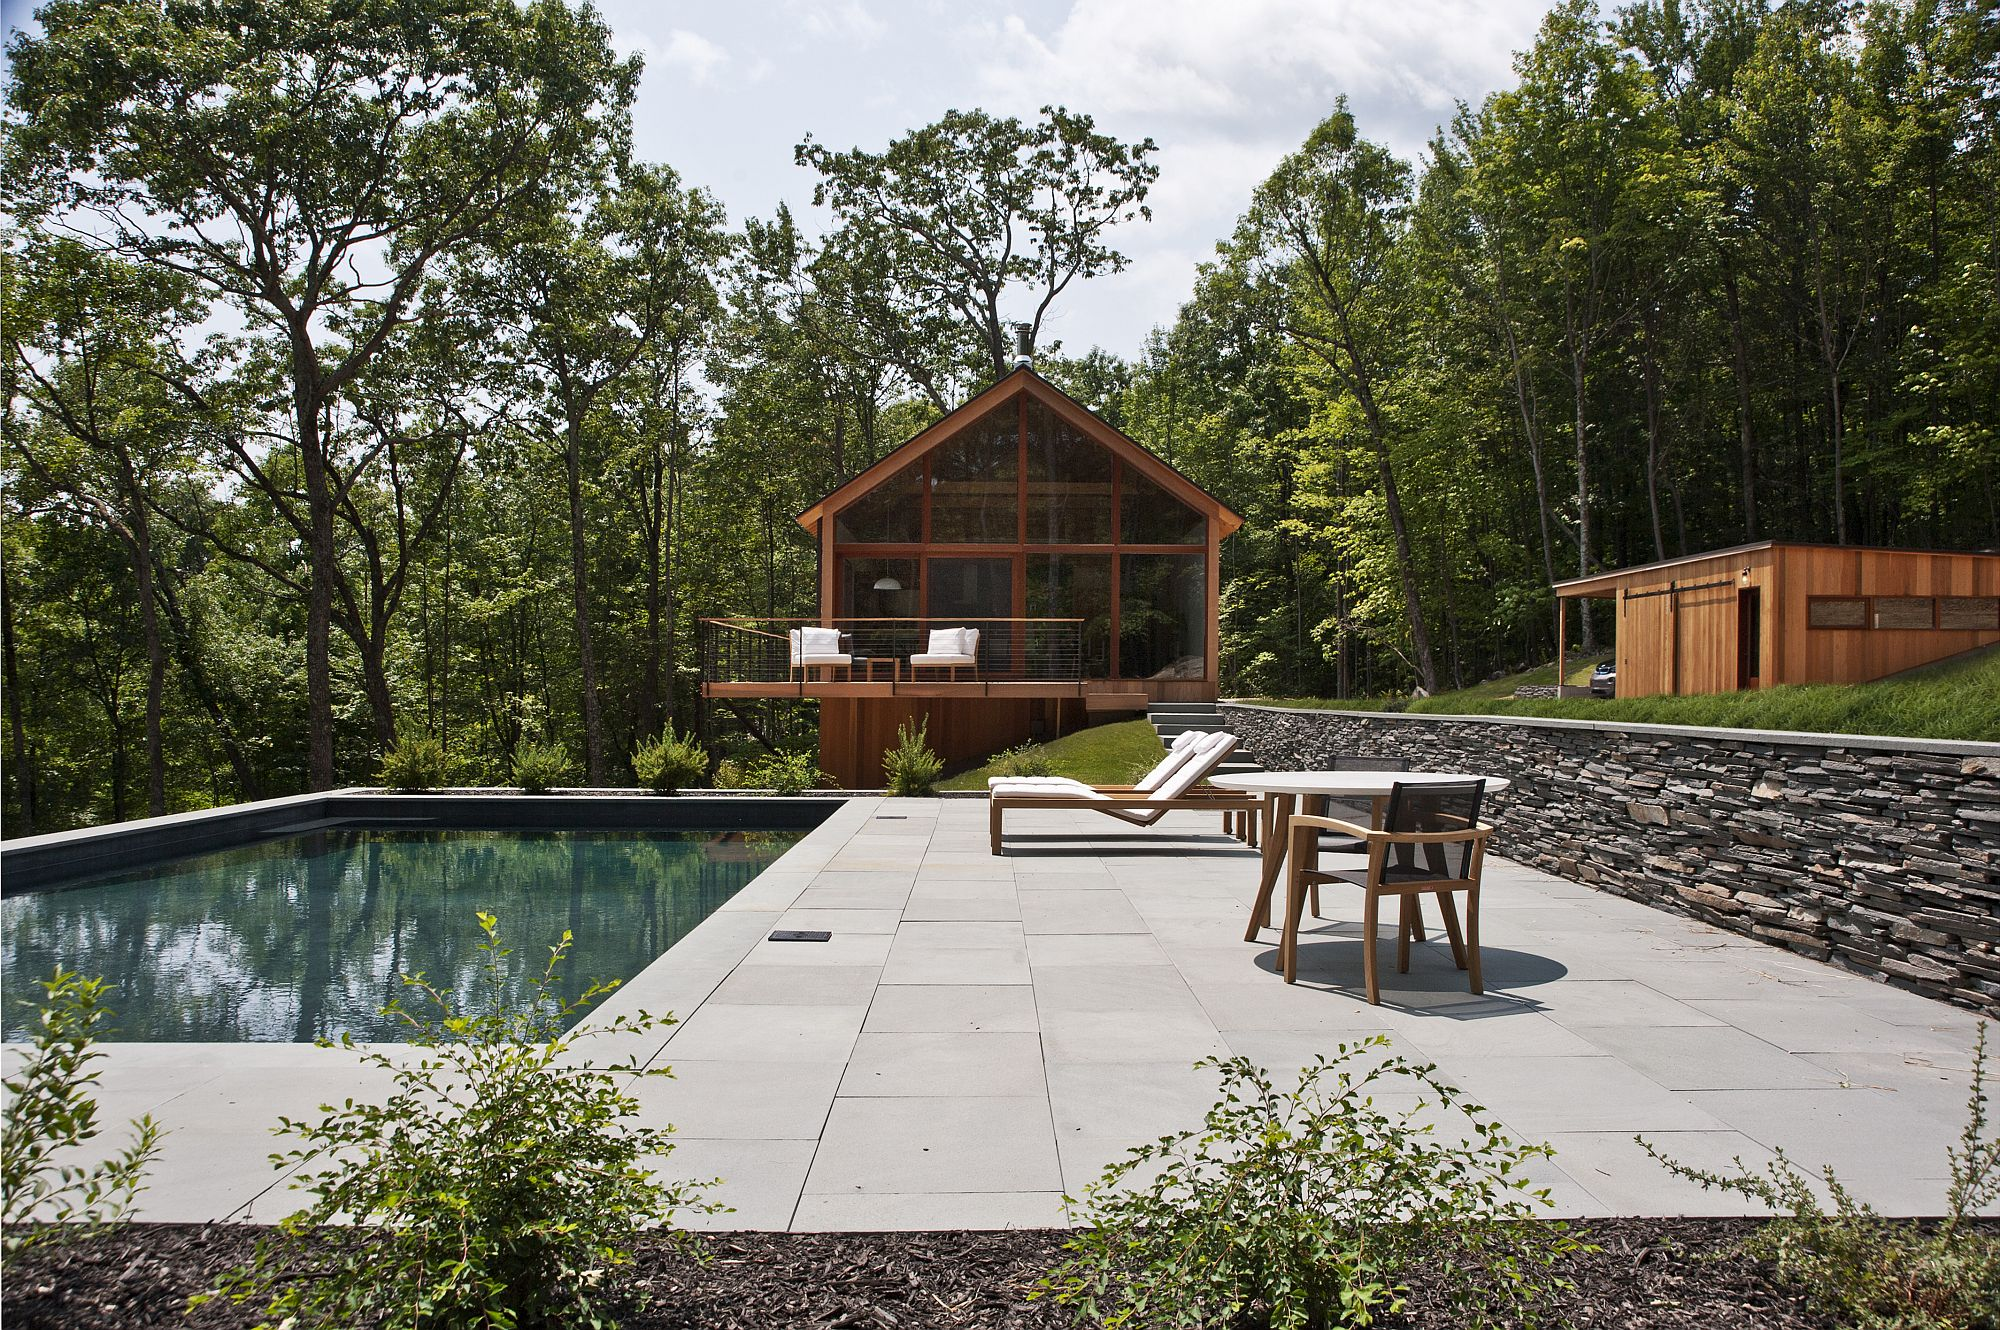 Hudson Woods Sustainable Modern Cabins Offer An Escape